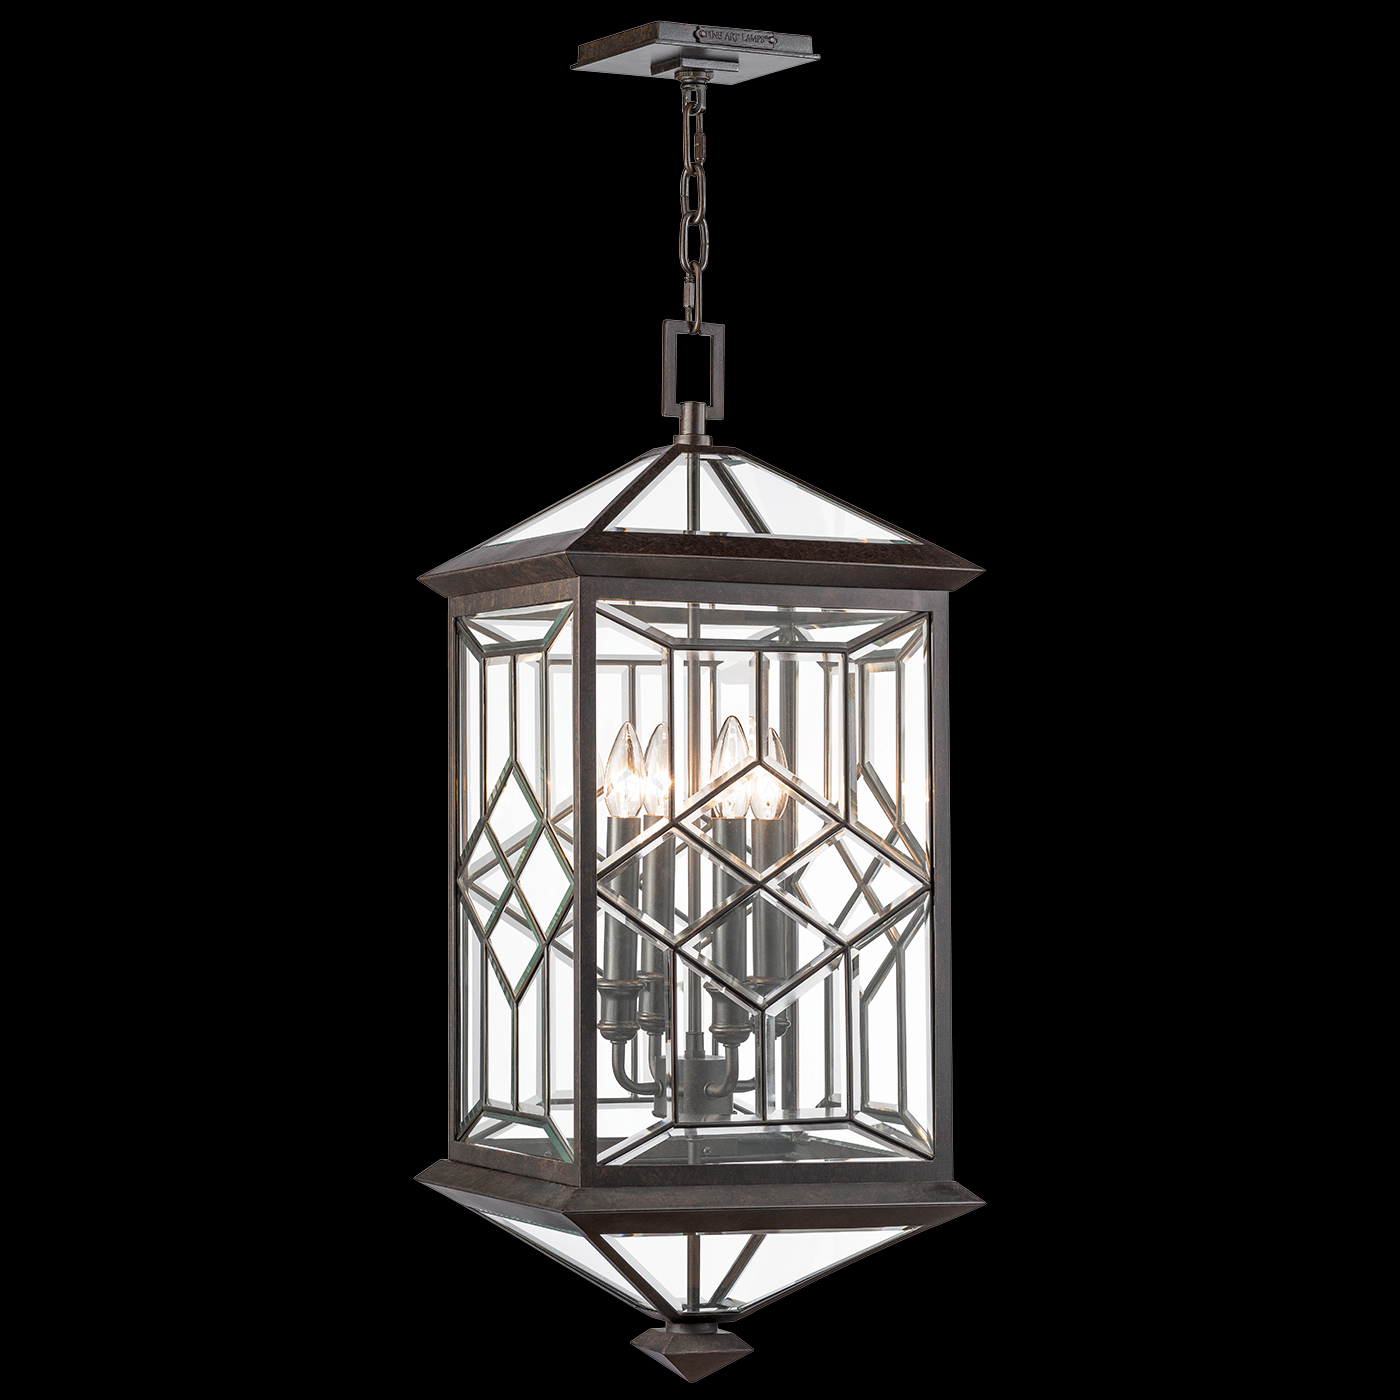 OXFORDSHIRE - FINE ART HANDCRAFTED LIGHTING